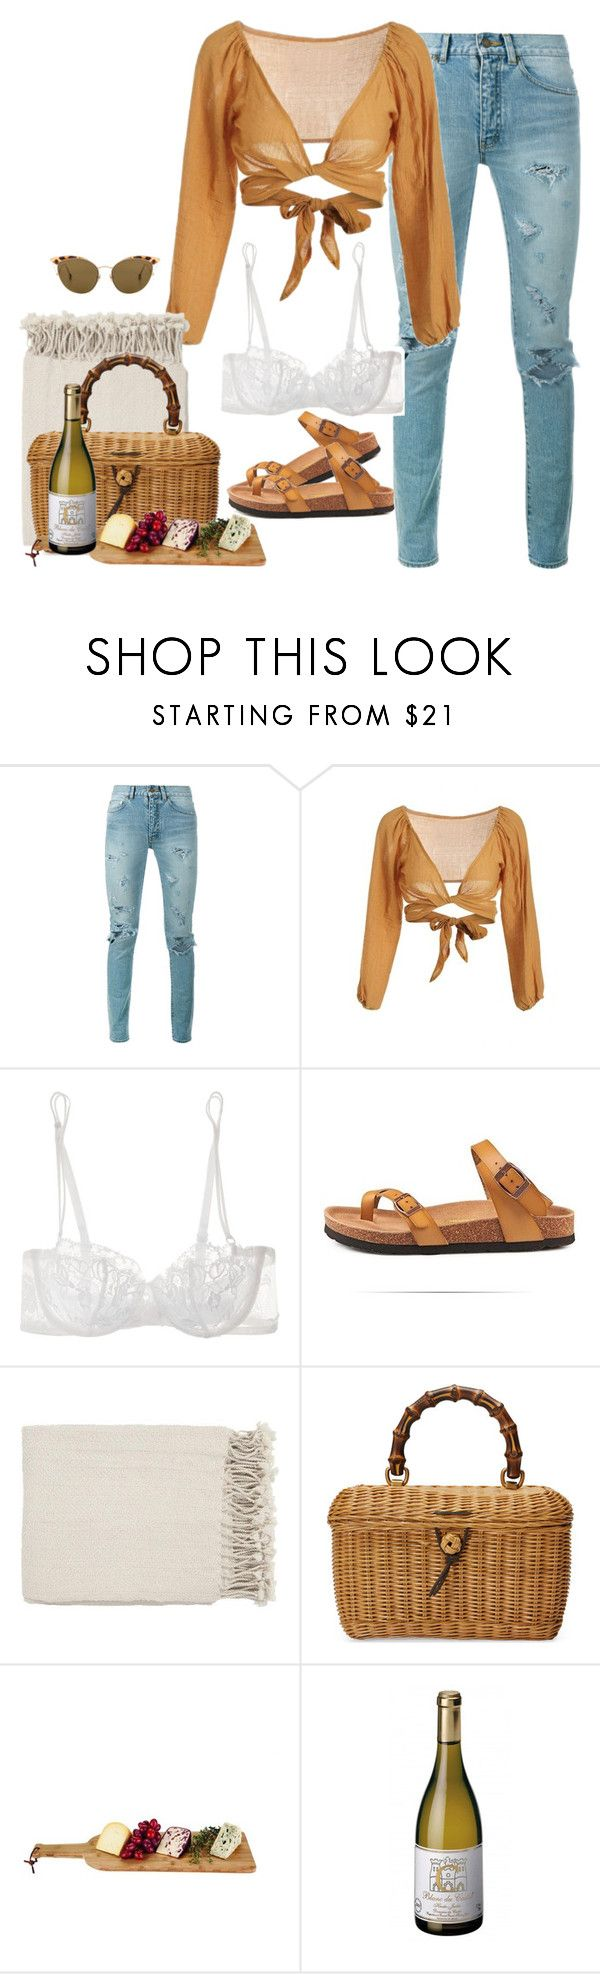 """Picnic Date"" by denise-xii ❤ liked on Polyvore featuring Yves Saint Laurent, La Perla, Surya, Gucci and Ahlem"